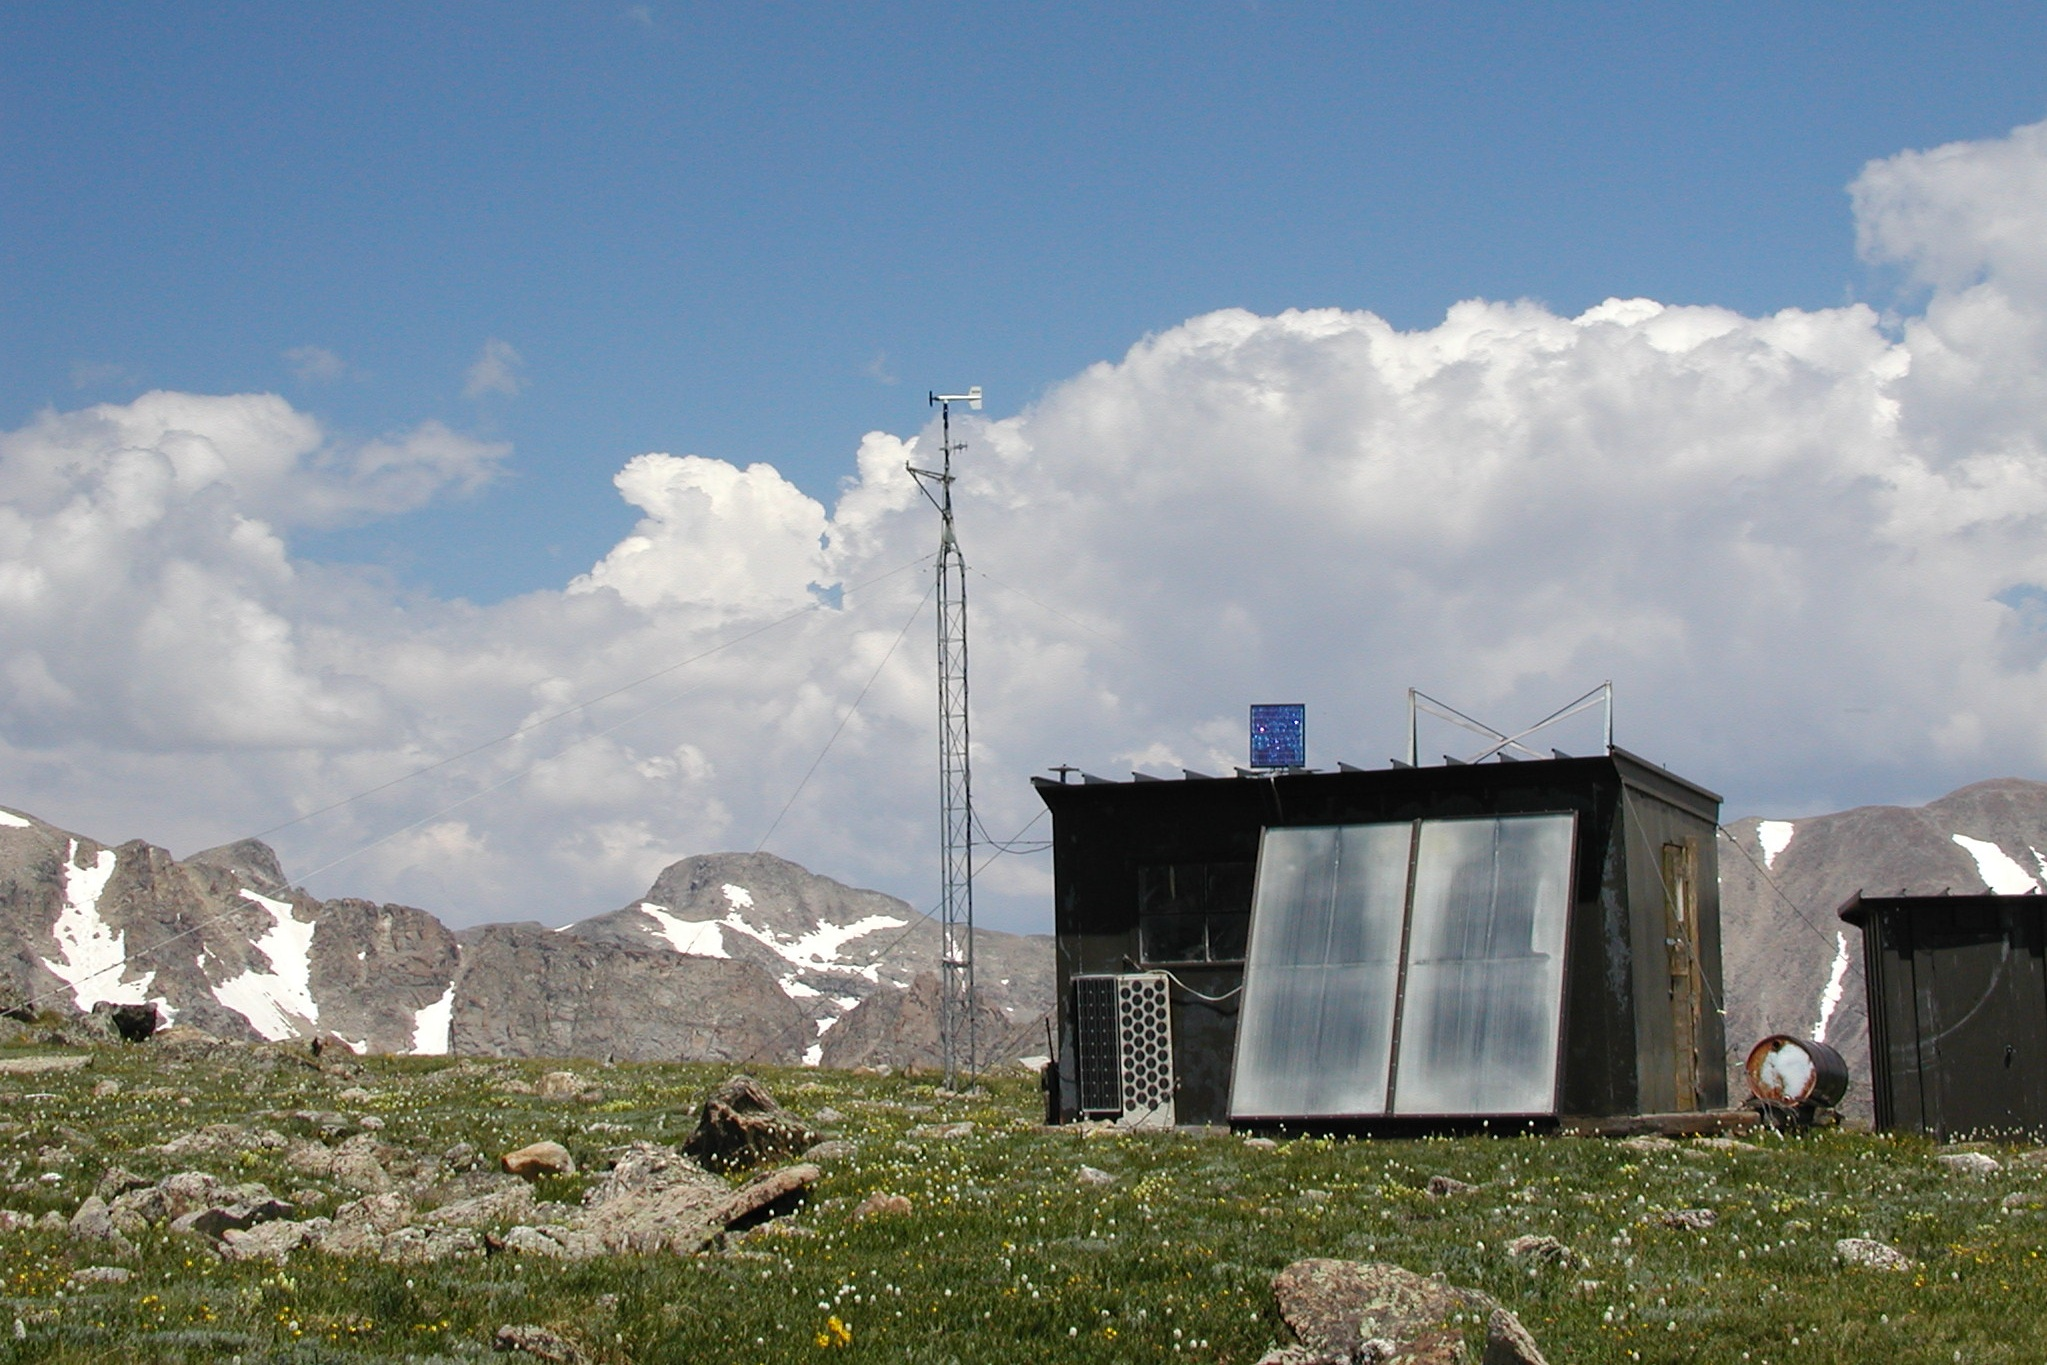 d1 - Station Elevation : 3739 mD1 is an alpine tundra site located 2.6 km from the Continental Divide. This is the highest continuously operating weather station in North America. Topographic setting: ridge-top. Climate data completeness is good from 1953 to the present. Climate parameters measured include temperature, relative humidity, solar radiation, barometric pressure, wind speed, wind direction, precipitation, soil moisture, and temperature.